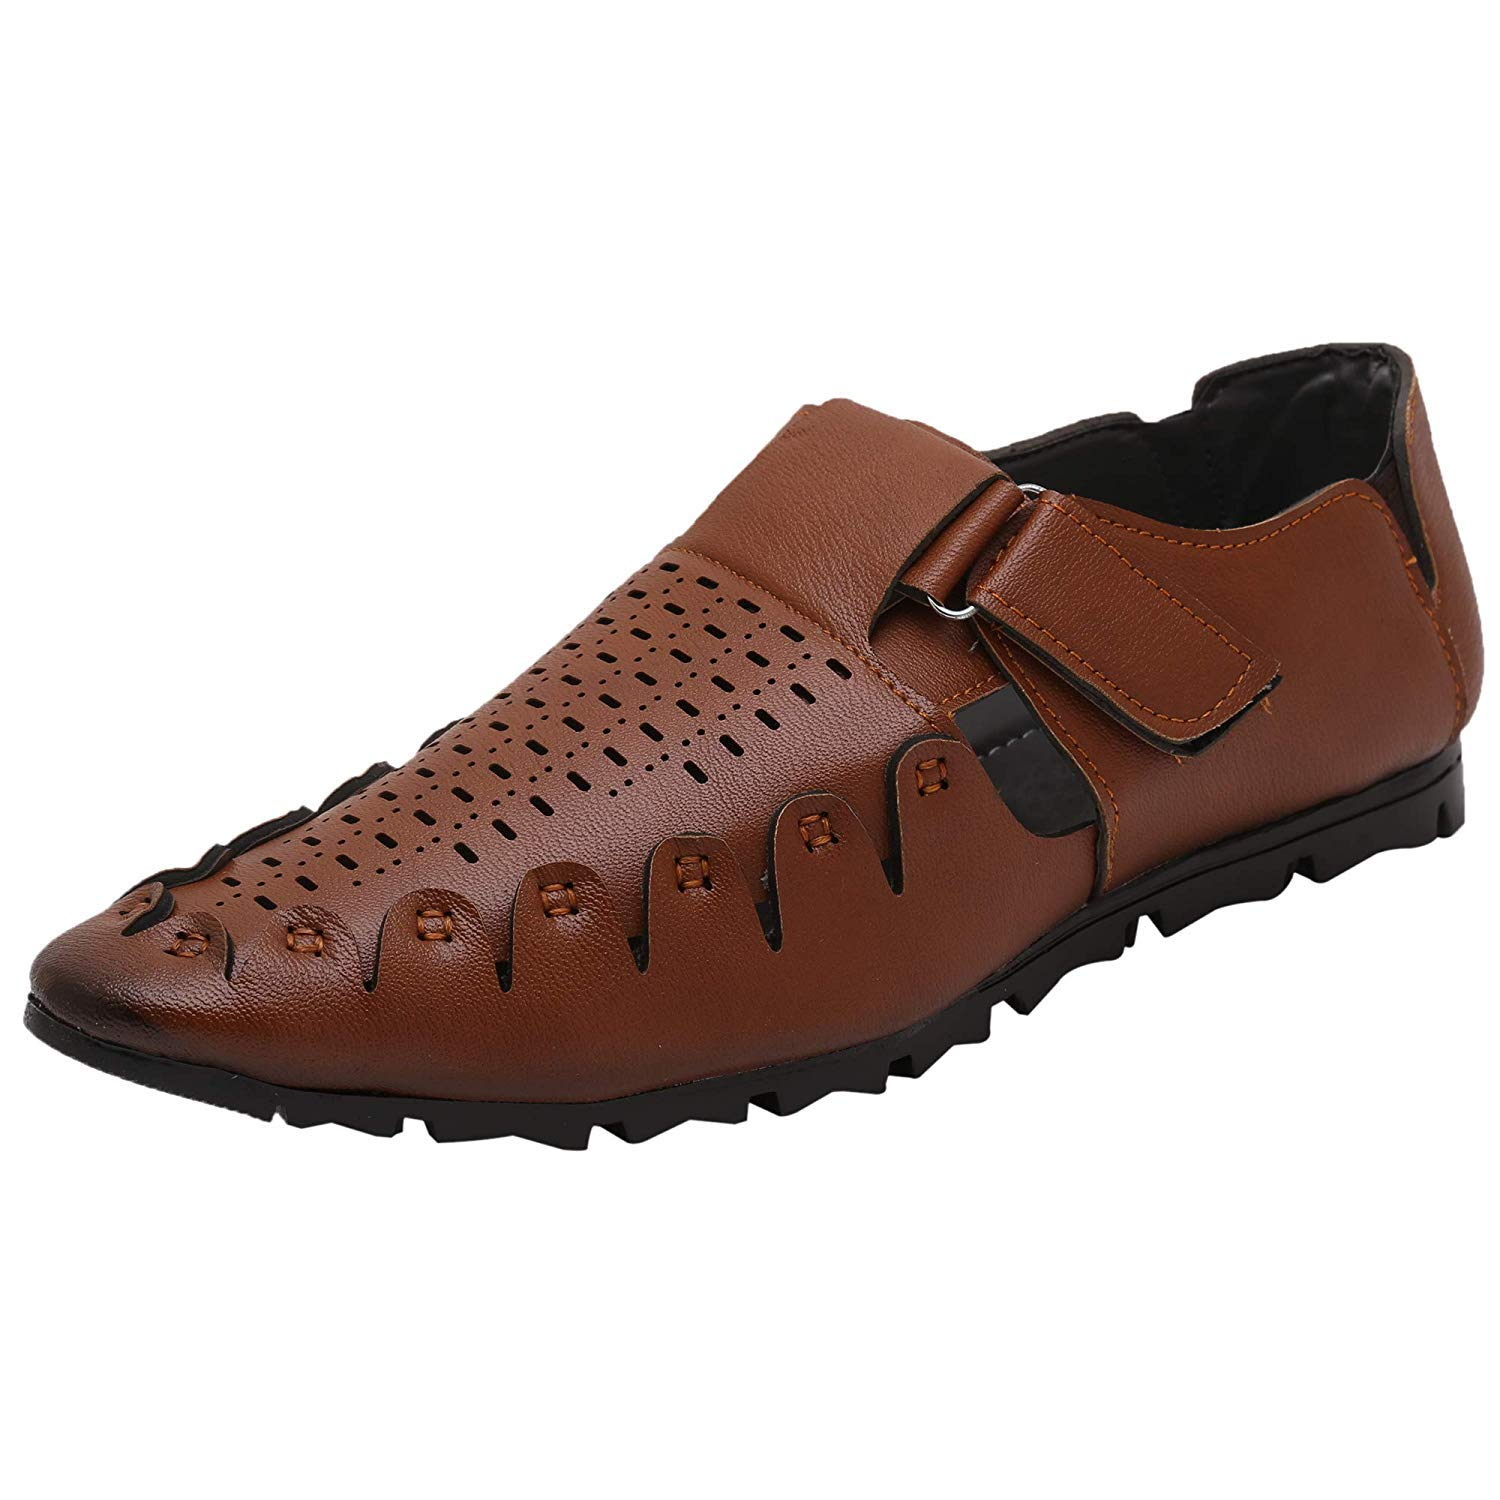 5e34c6949fd7df YB BAZAAR Men s Tan Dark Brown Black Colour Outdoor Formal Casual Ethnic  Loafer Slip-On Sandal  Buy Online at Low Prices in India - Amazon.in